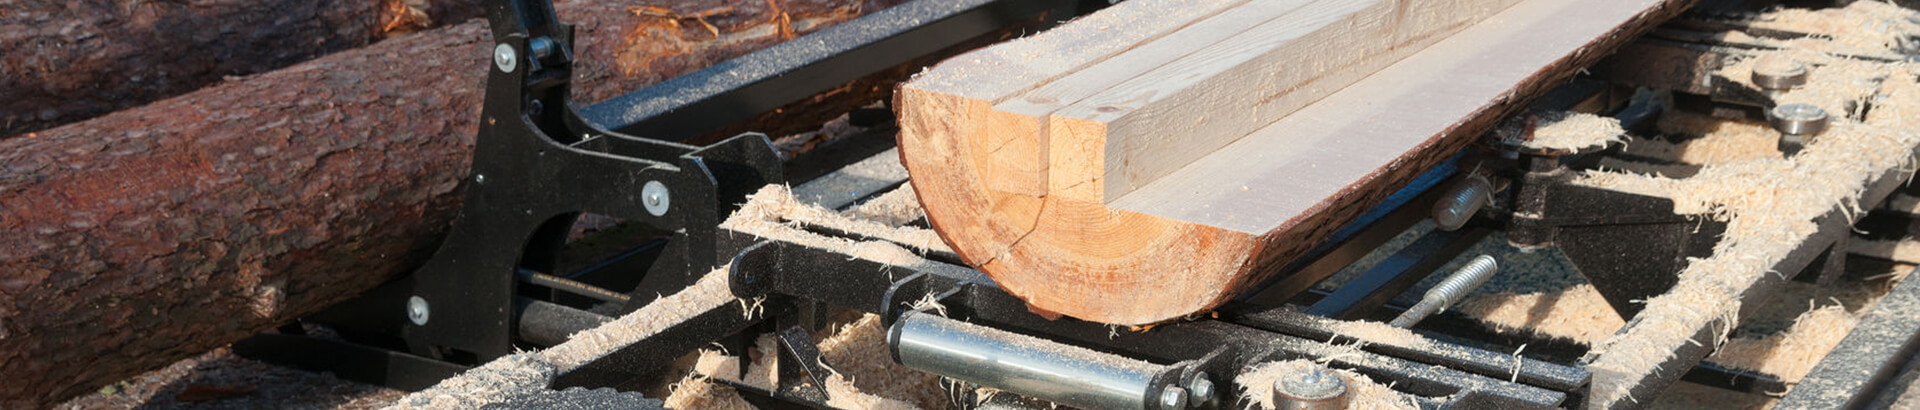 What Are the Types of Sawing Tools and Their Uses?